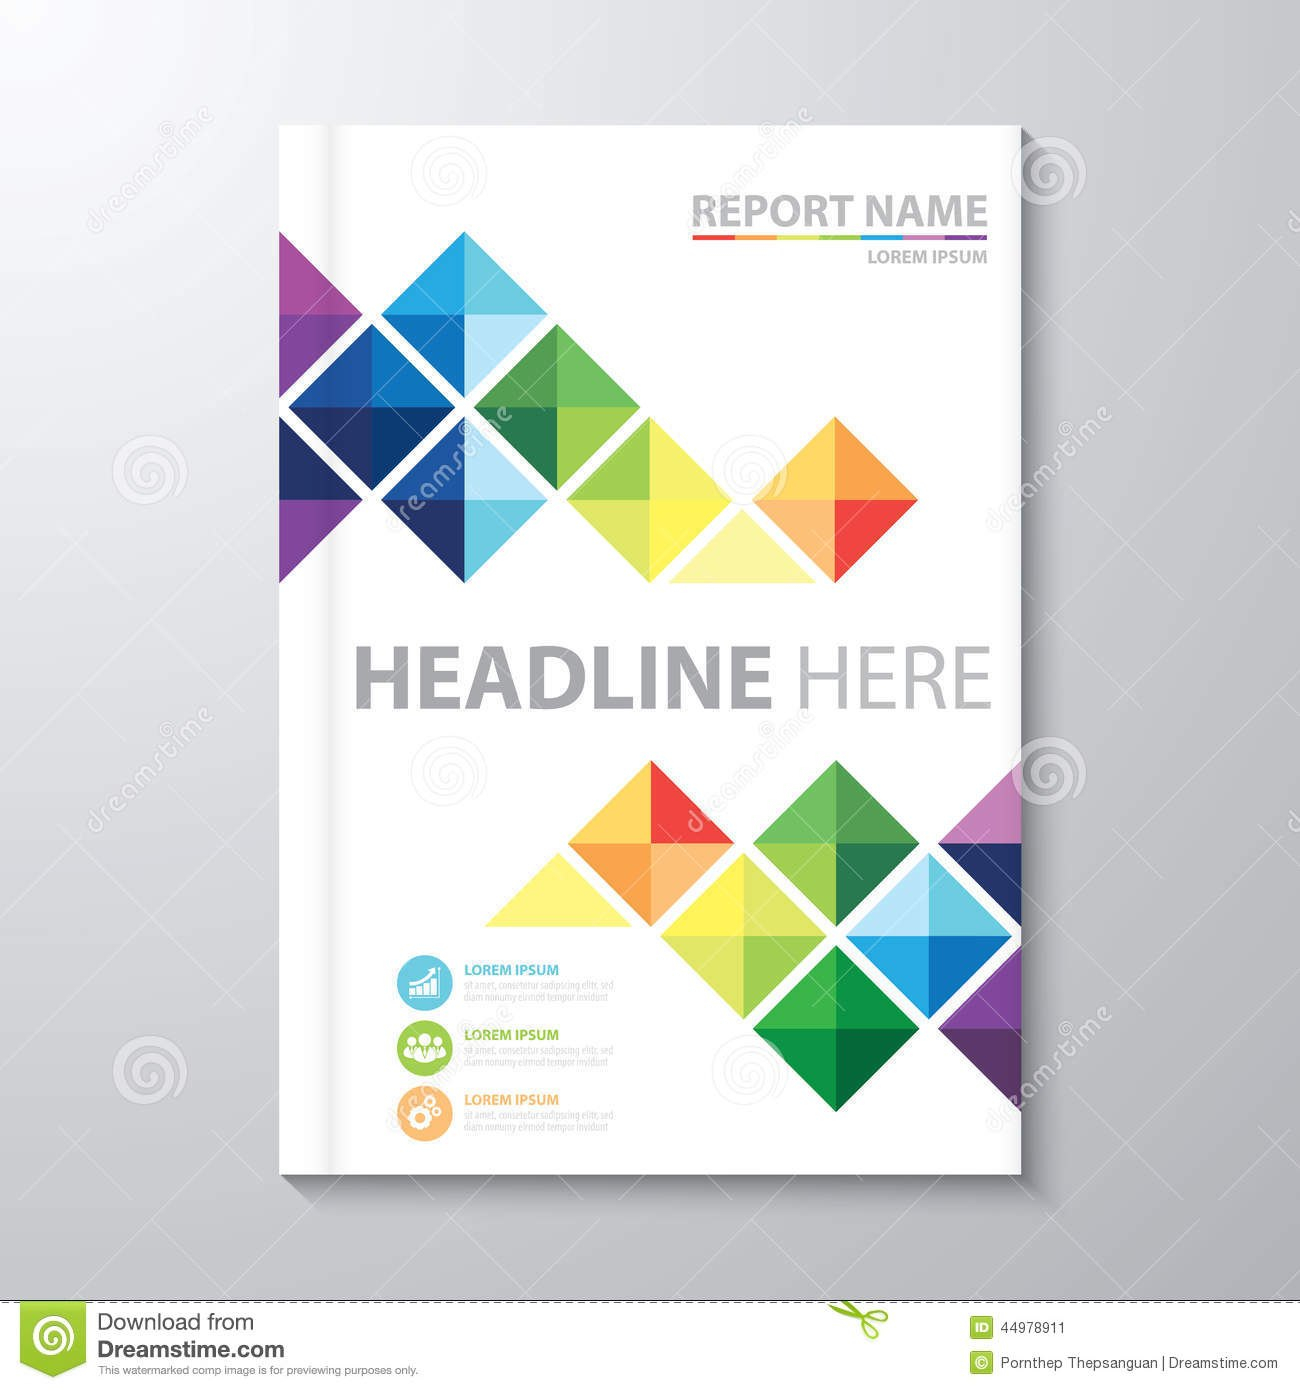 Annual Report Cover Page Templates Images  Annual Report Cover Within Cover Page Of Report Template In Word